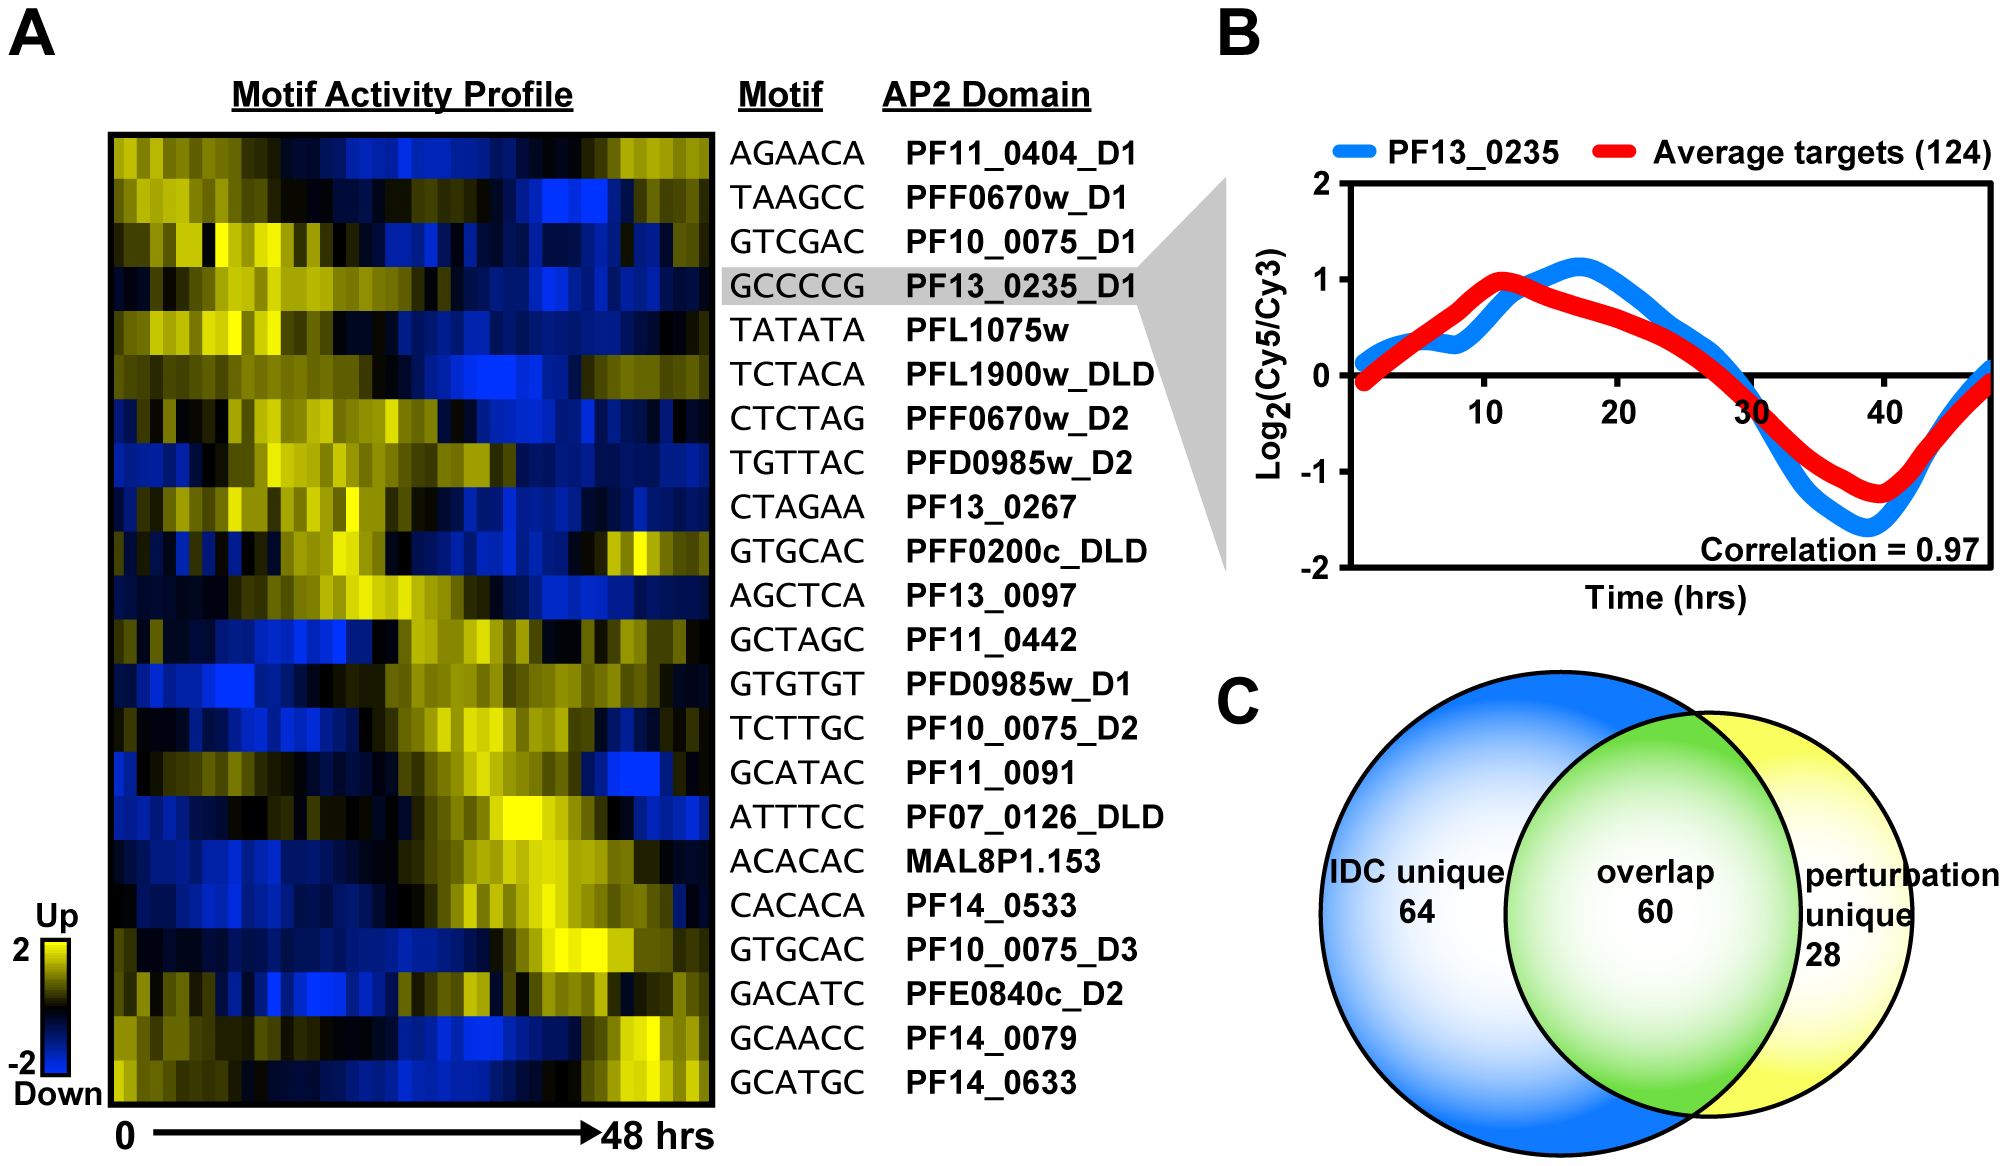 Activity profiles for AP2 motifs and refinement of target gene predictions during the IDC.